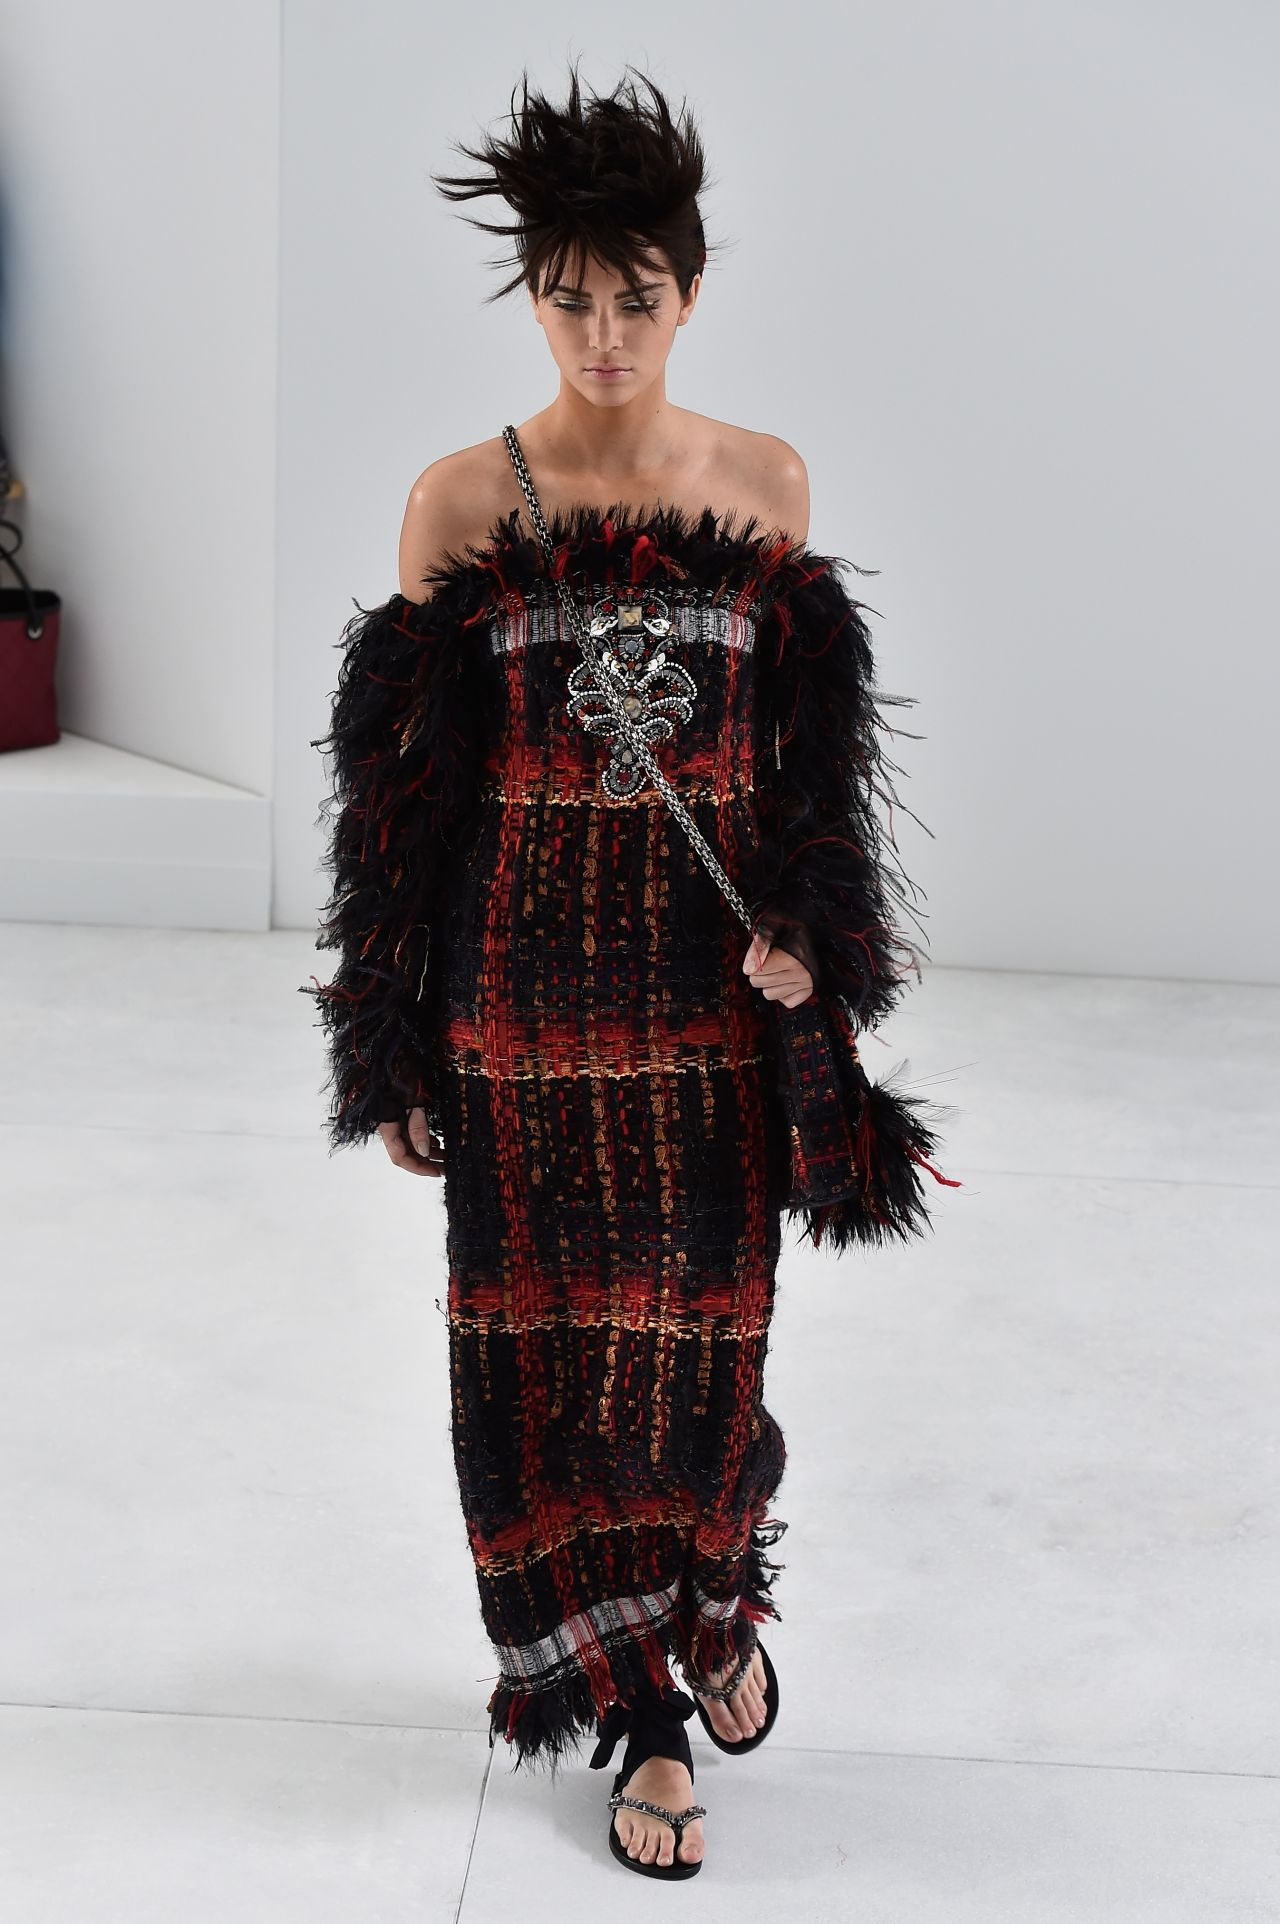 Kendall Jenner Chanel Haute Couture Runway     Paris Fashion Week    Kendall Jenner Chanel 2014